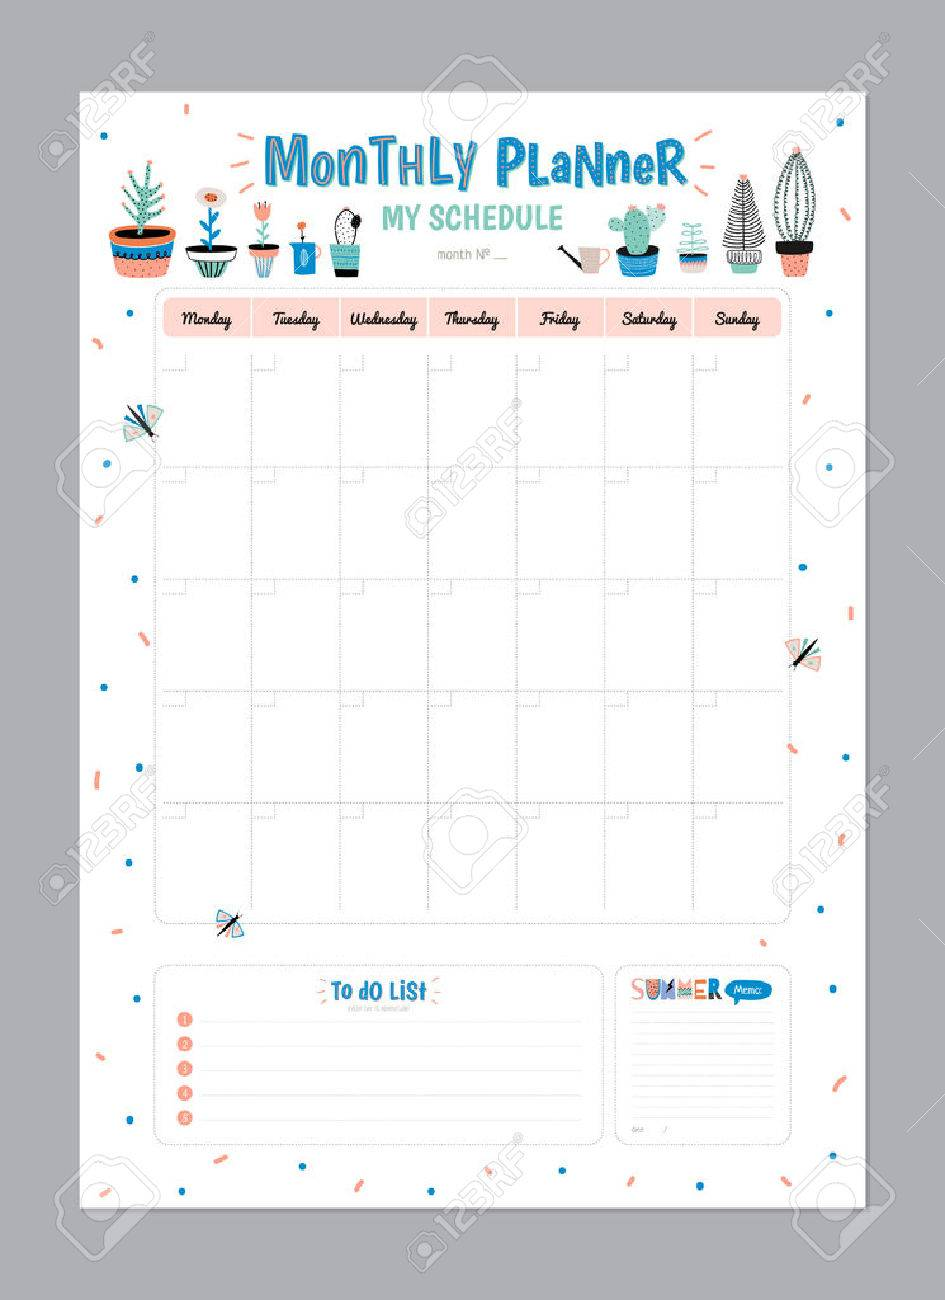 Scandinavian Weekly And Daily Planner Template. Organizer And Schedule With  Notes And To Do List  Daily Organizer Template